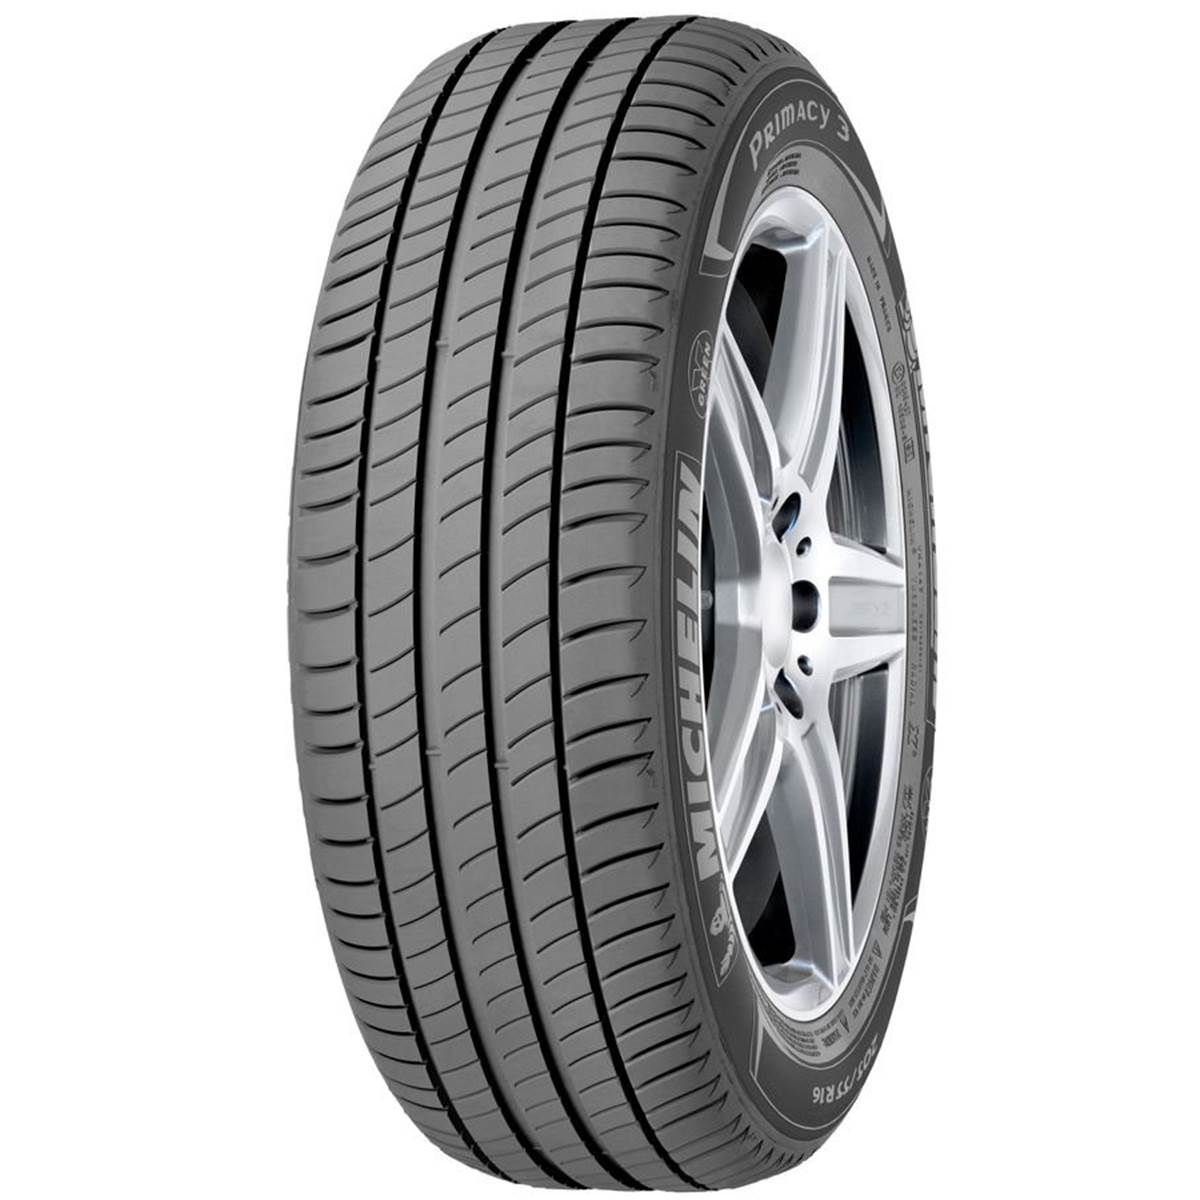 Pneu Michelin 225/60R16 98W Primacy 3